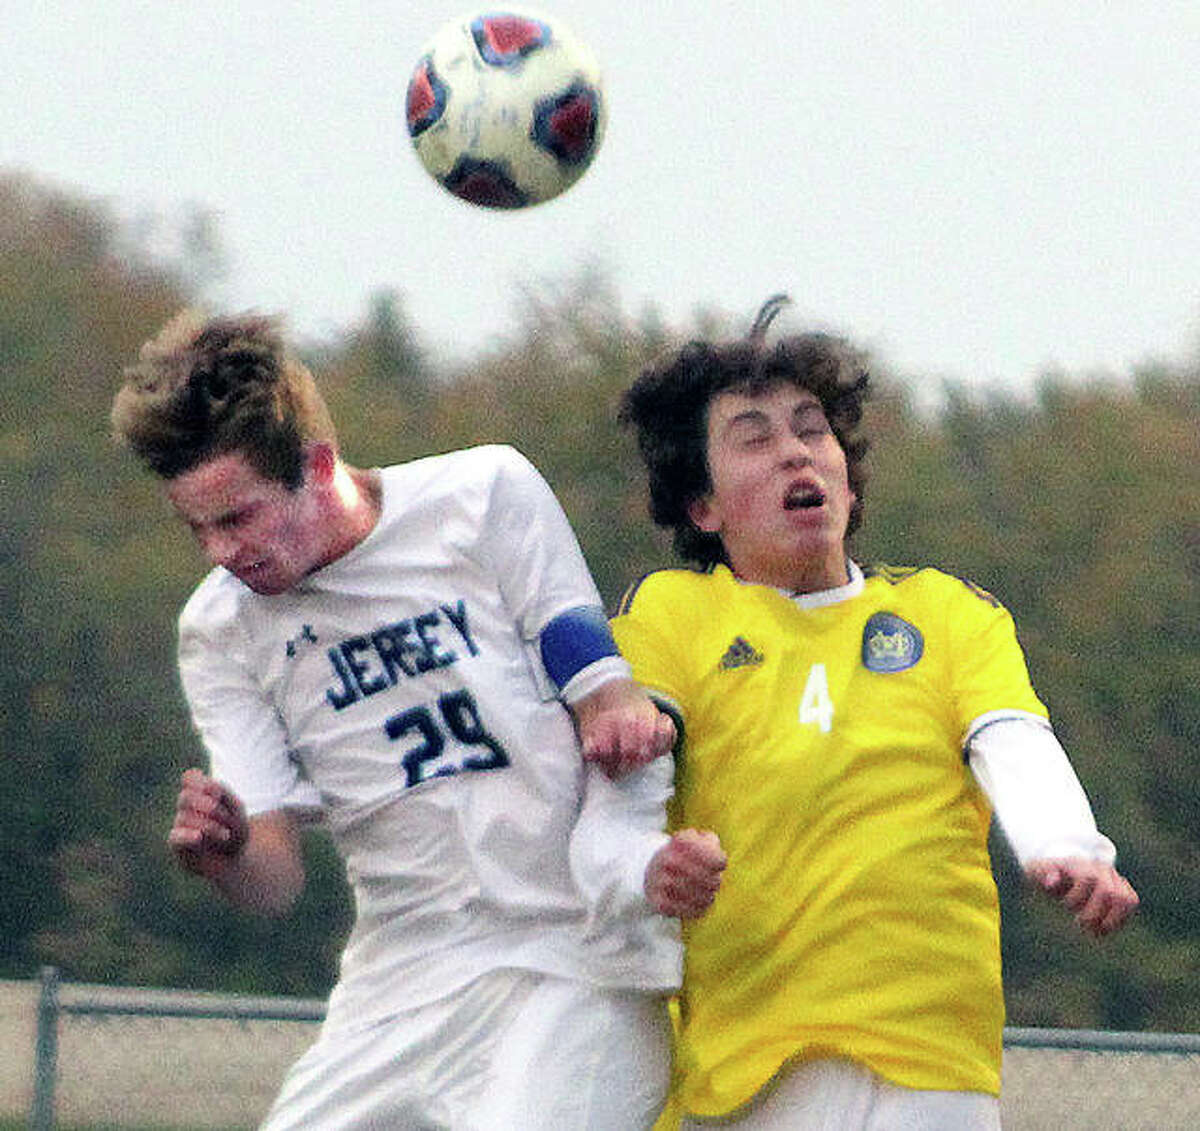 Andrew Kribs of Jersey, left, goes up with CM's Grant Hailey for a headball in a 2019 game.